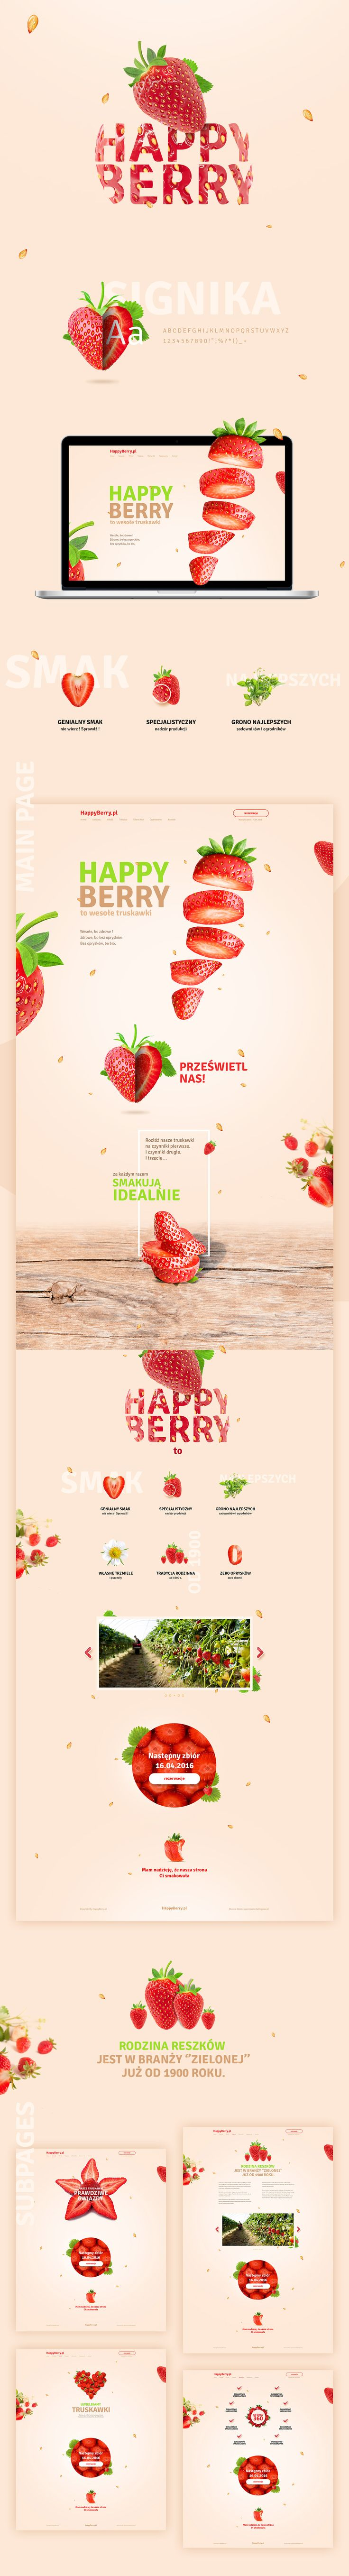 "Confira este projeto do @Behance: ""Strawberry Farm website concept"" https://www.behance.net/gallery/35392021/Strawberry-Farm-website-concept"